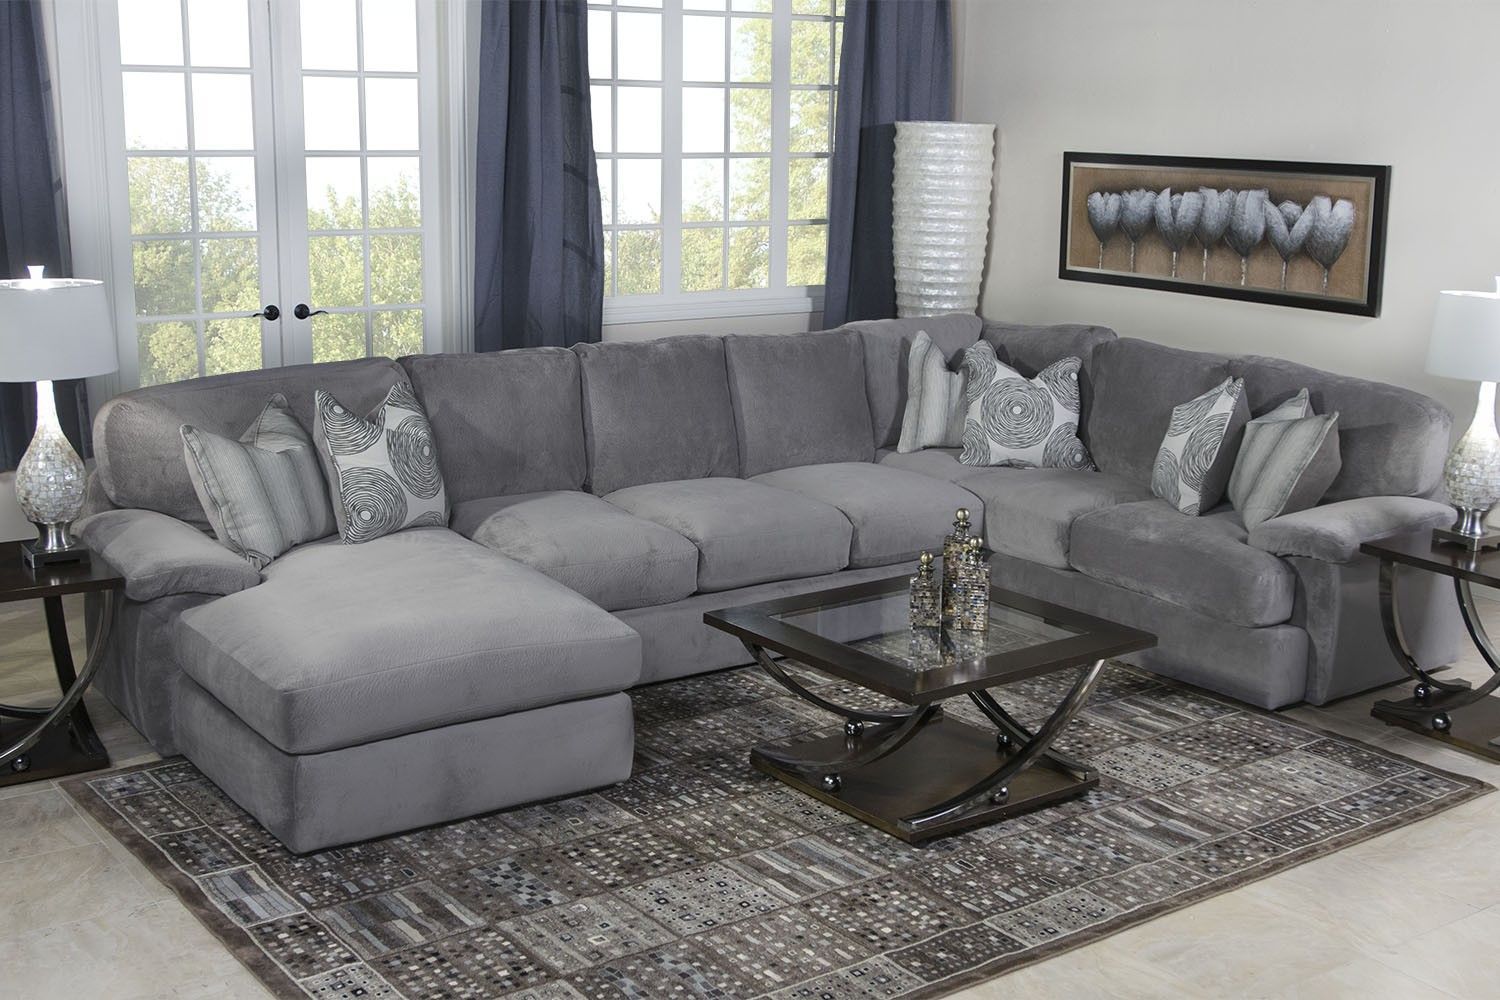 Key west sectional living room in gray living room mor for Living room ideas furniture